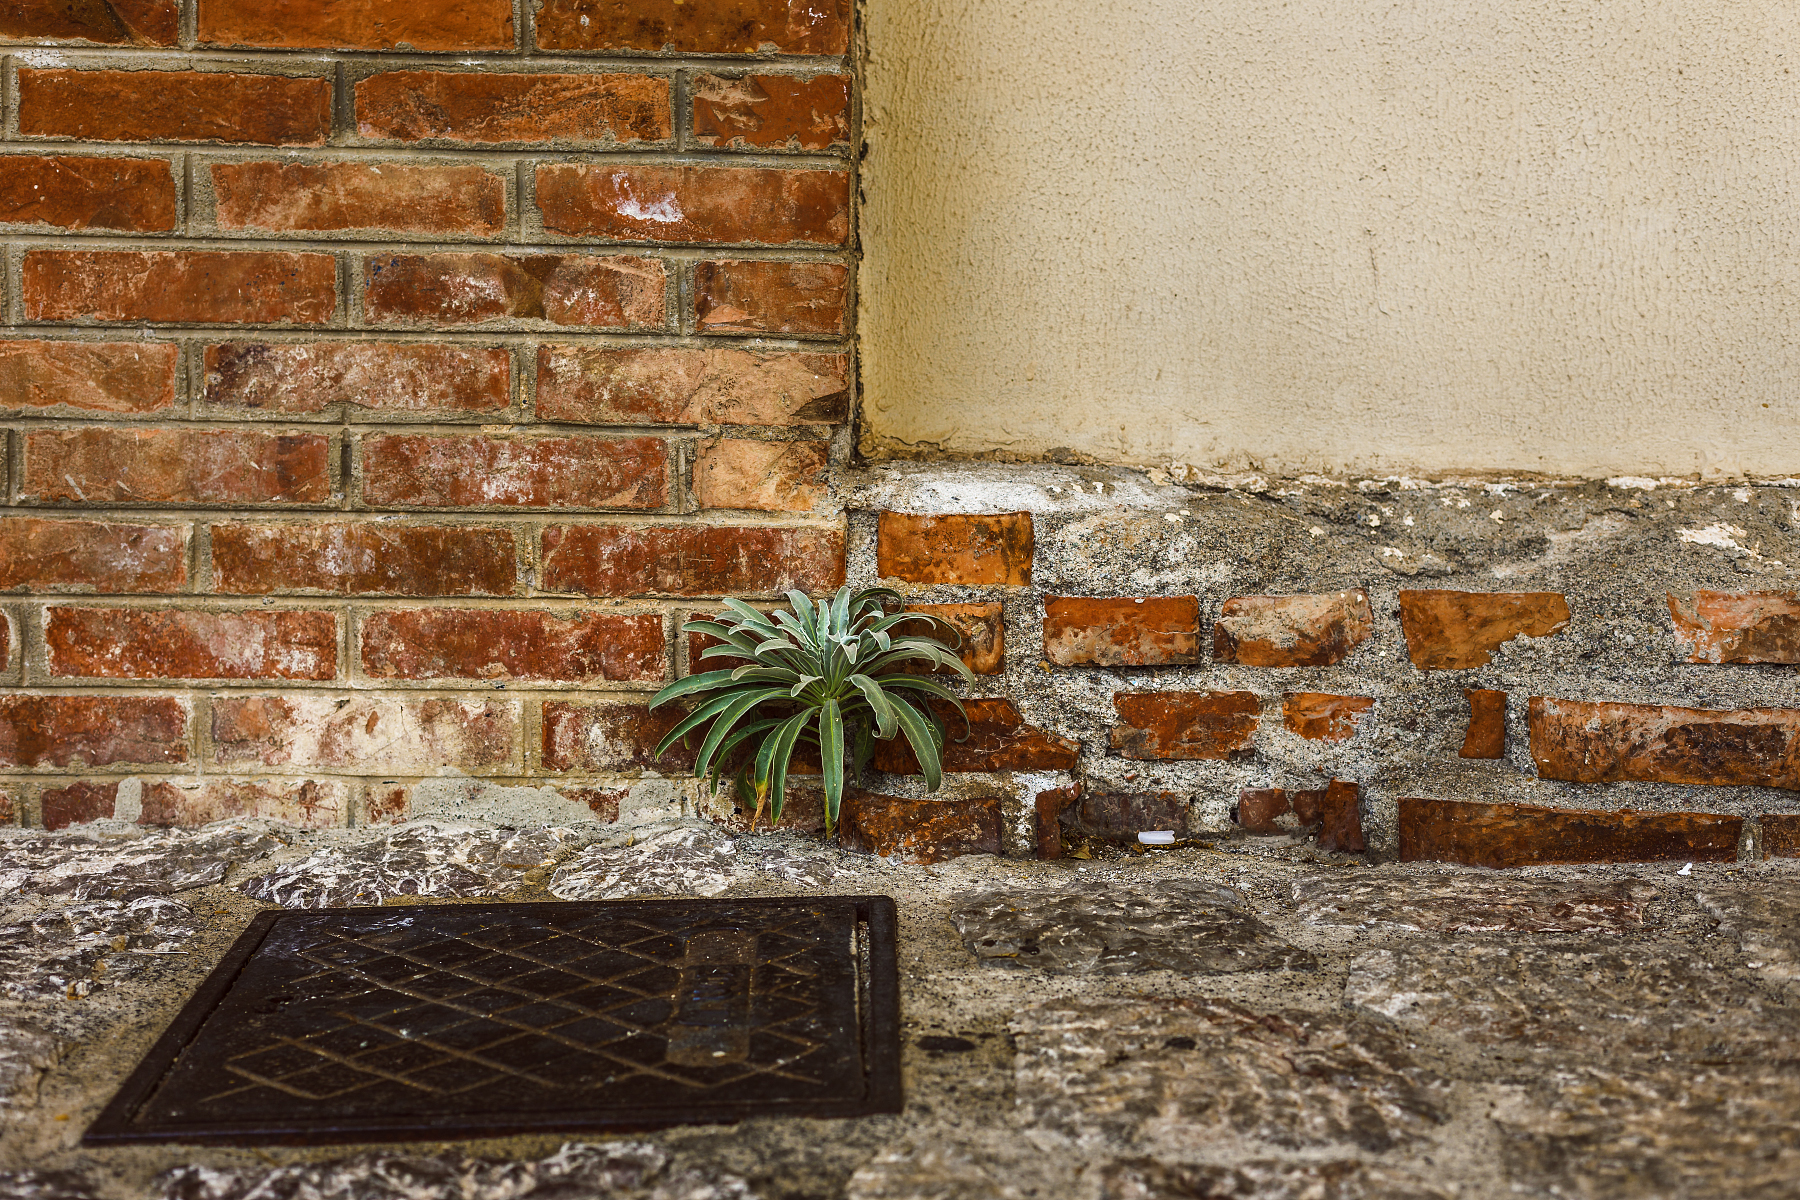 Plant growing out of bricks.